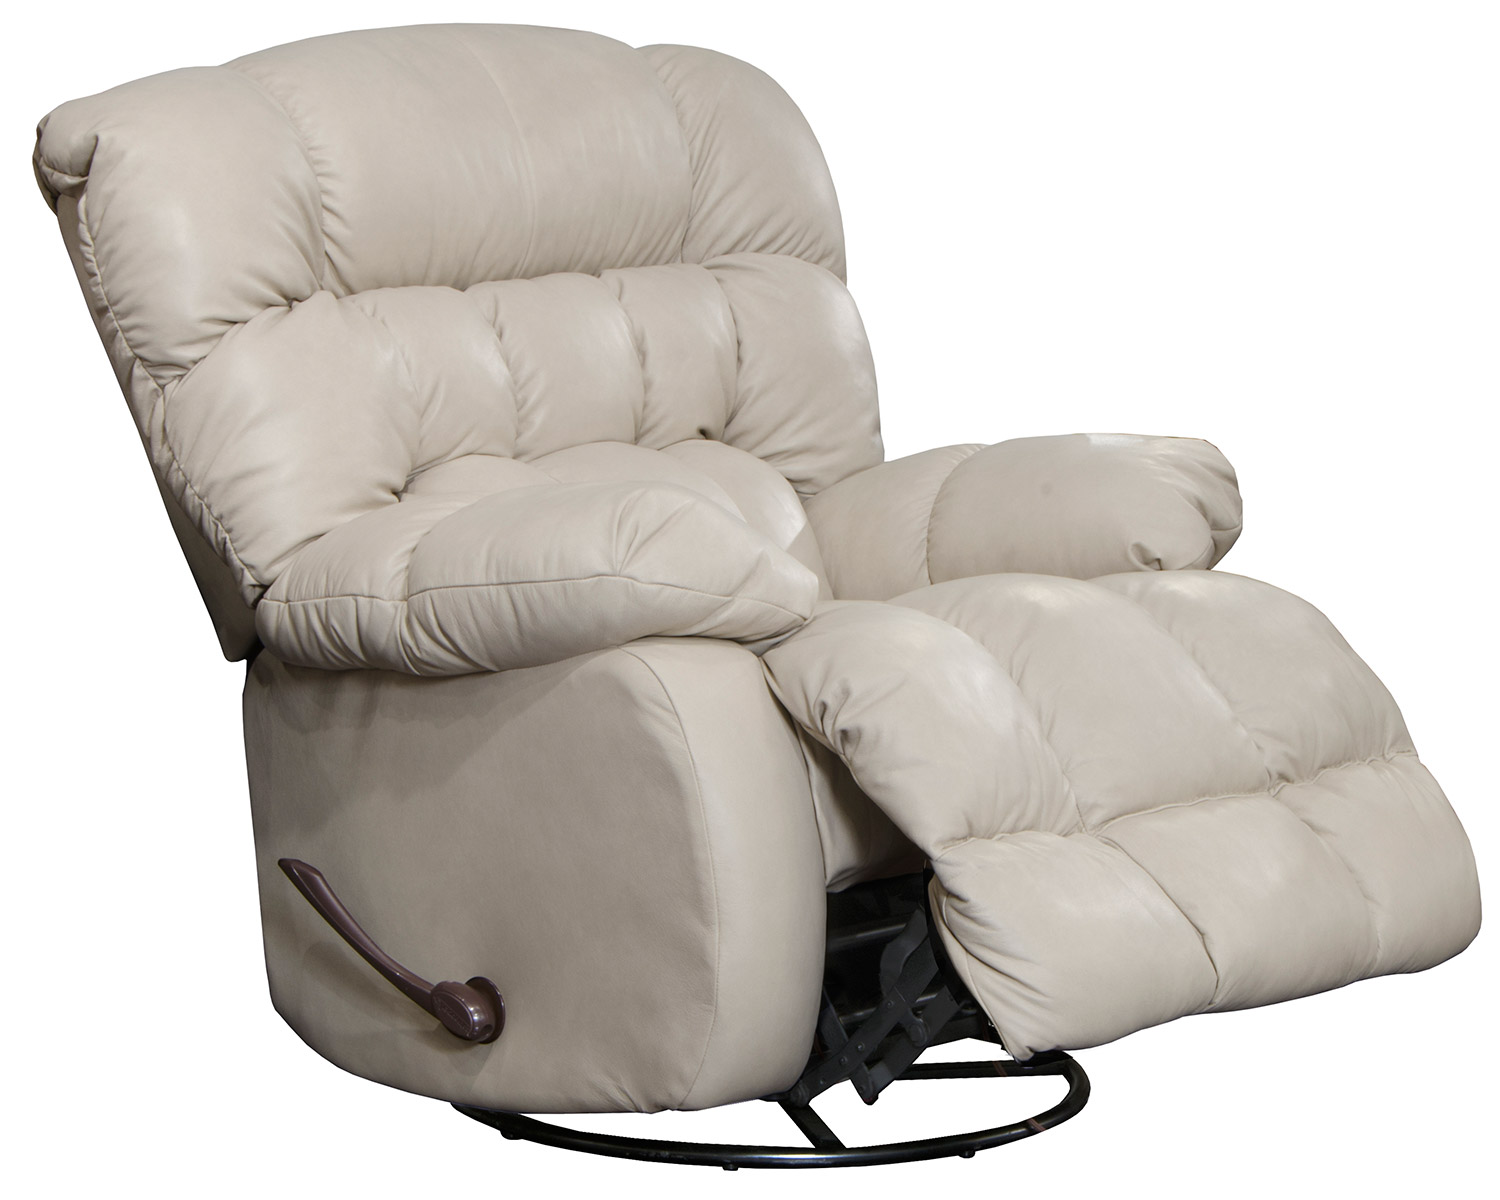 CatNapper Pendleton Leather Recliner Chair - Alabaster